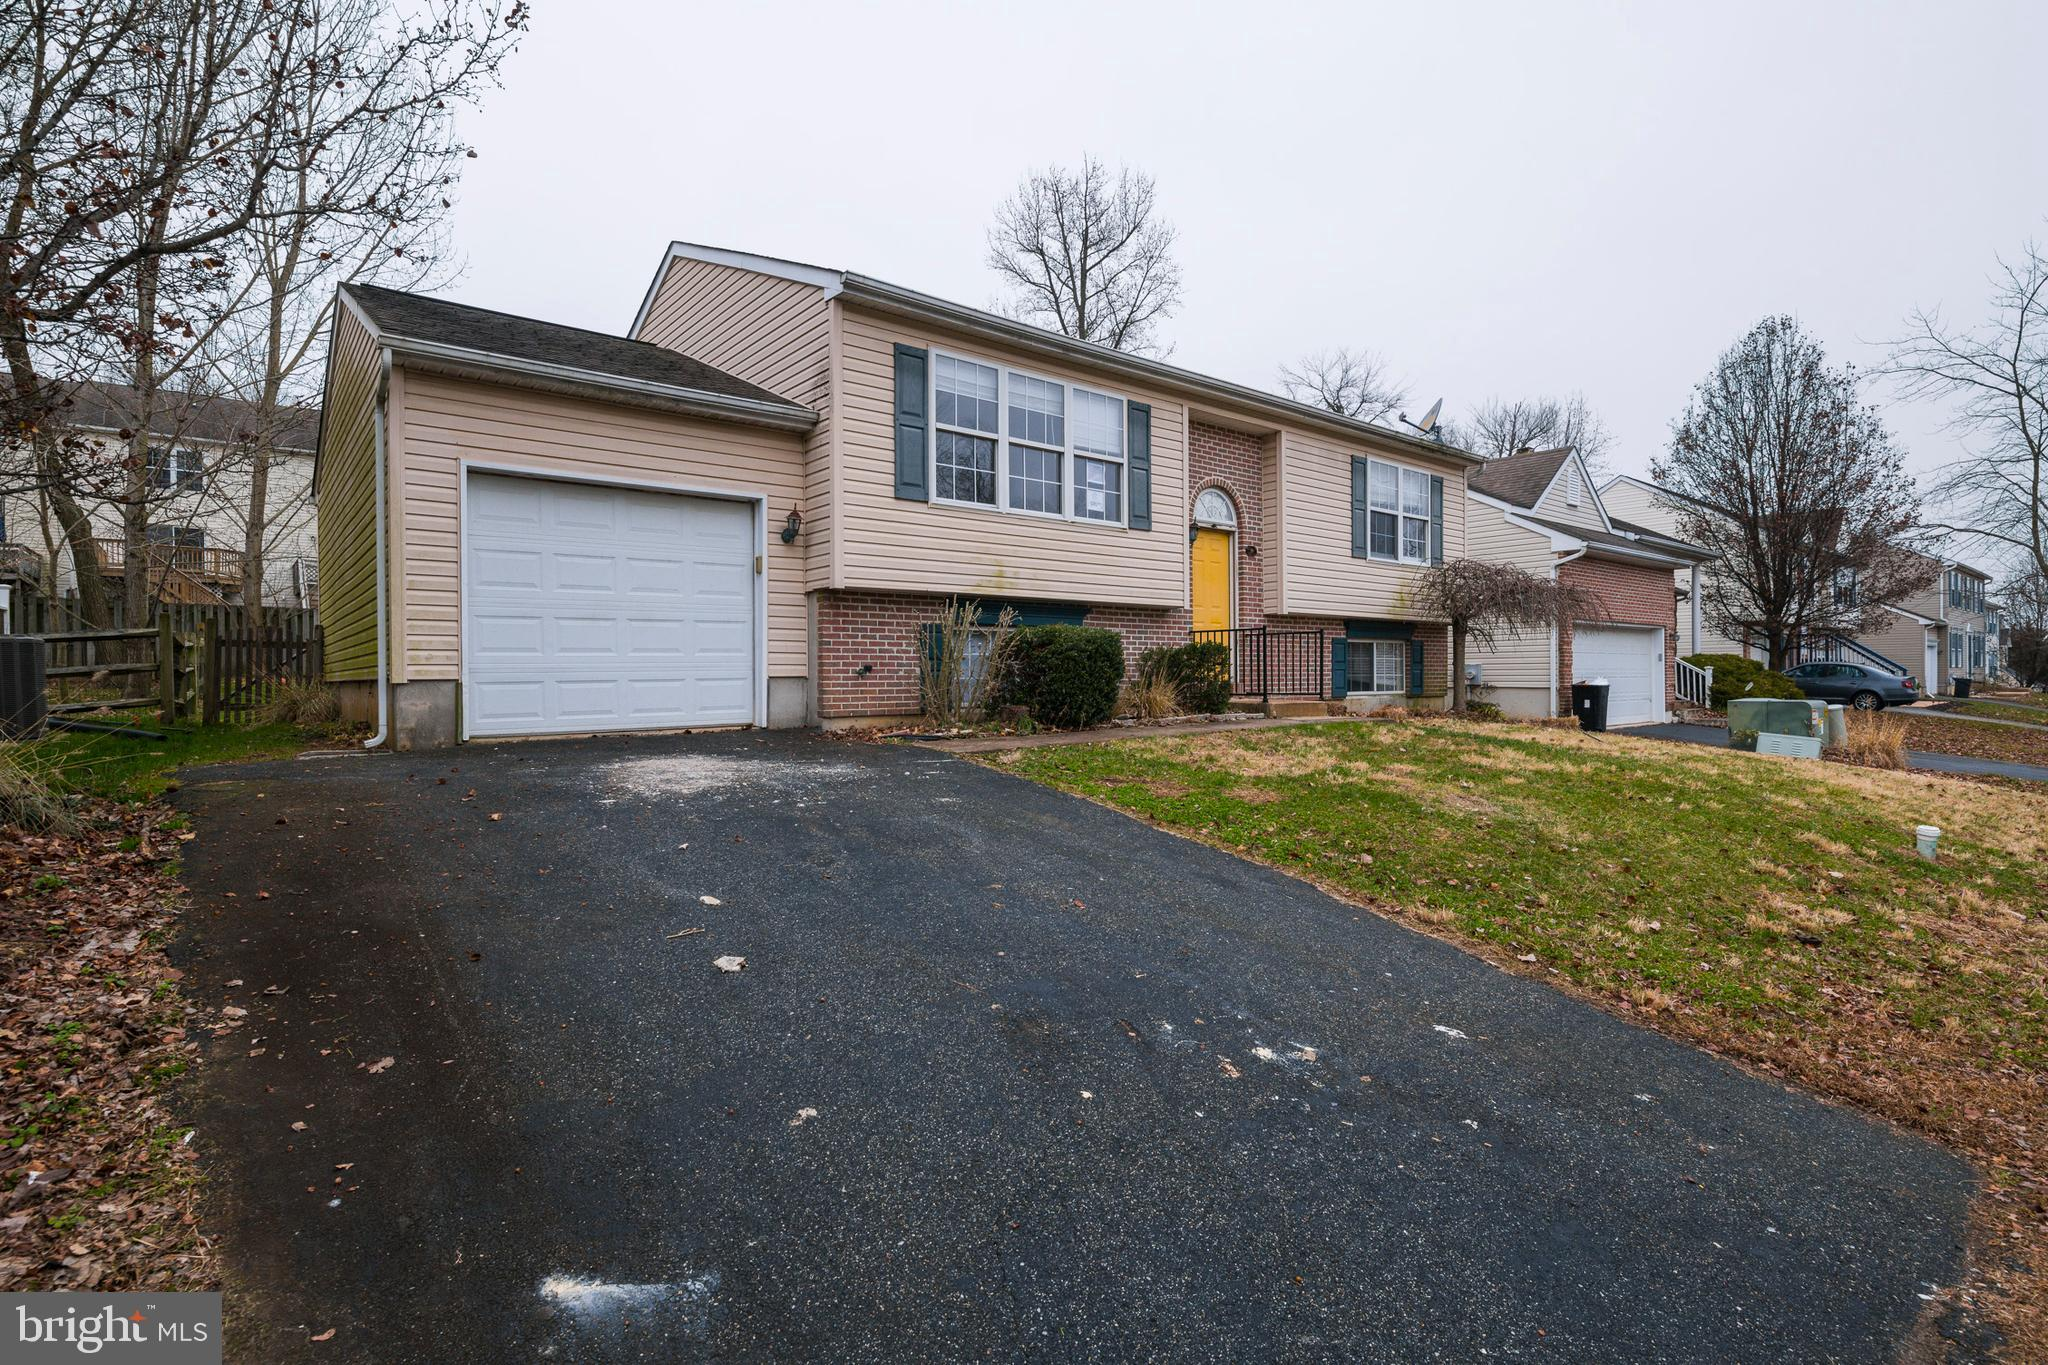 Located in the Village of Elk Ridge neighborhood, this split level home was built in 2000 and offers